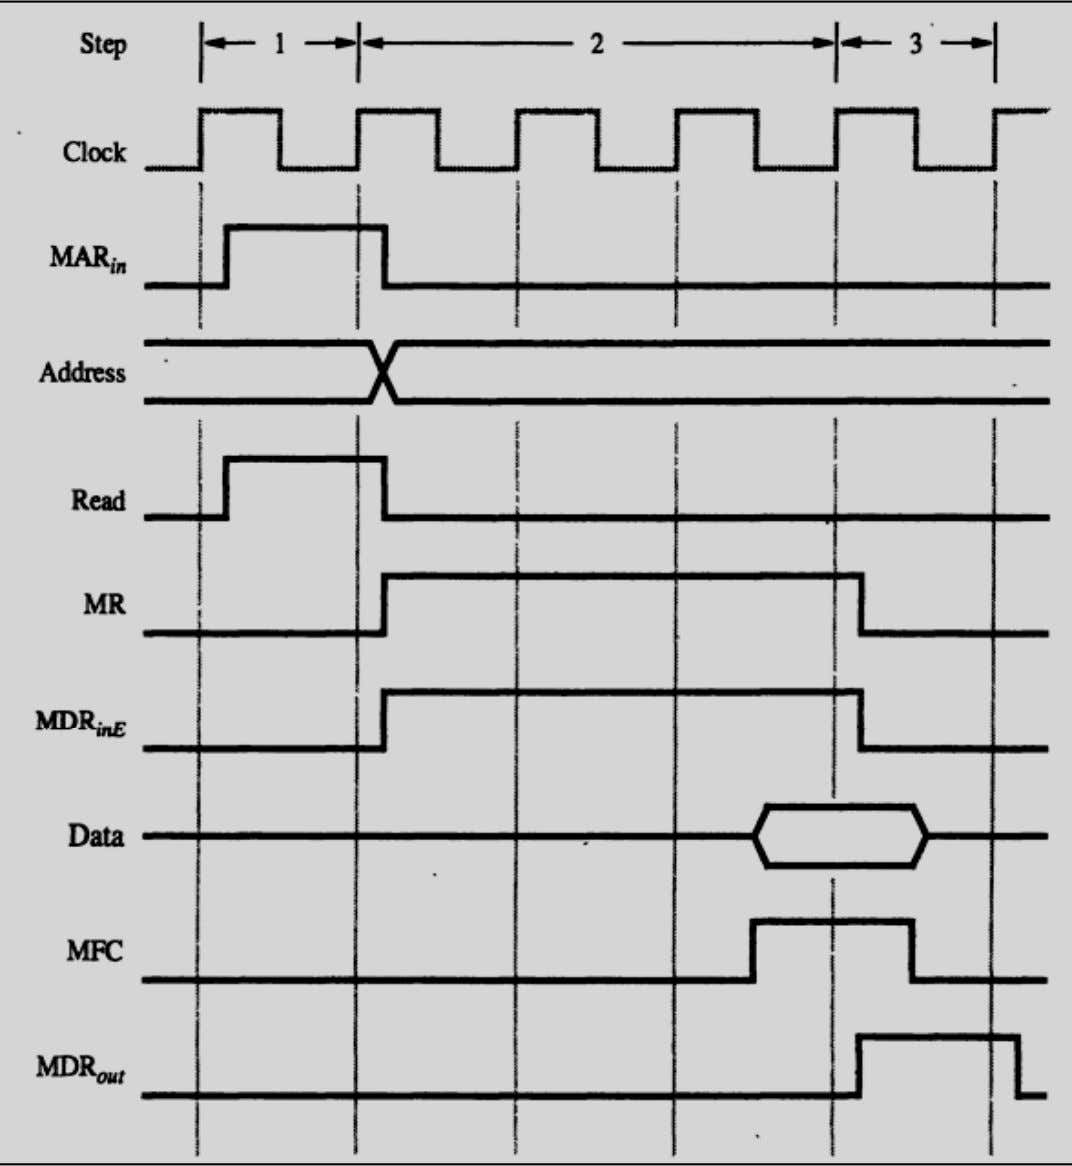 Timing Diagram of a: Memory Read operation